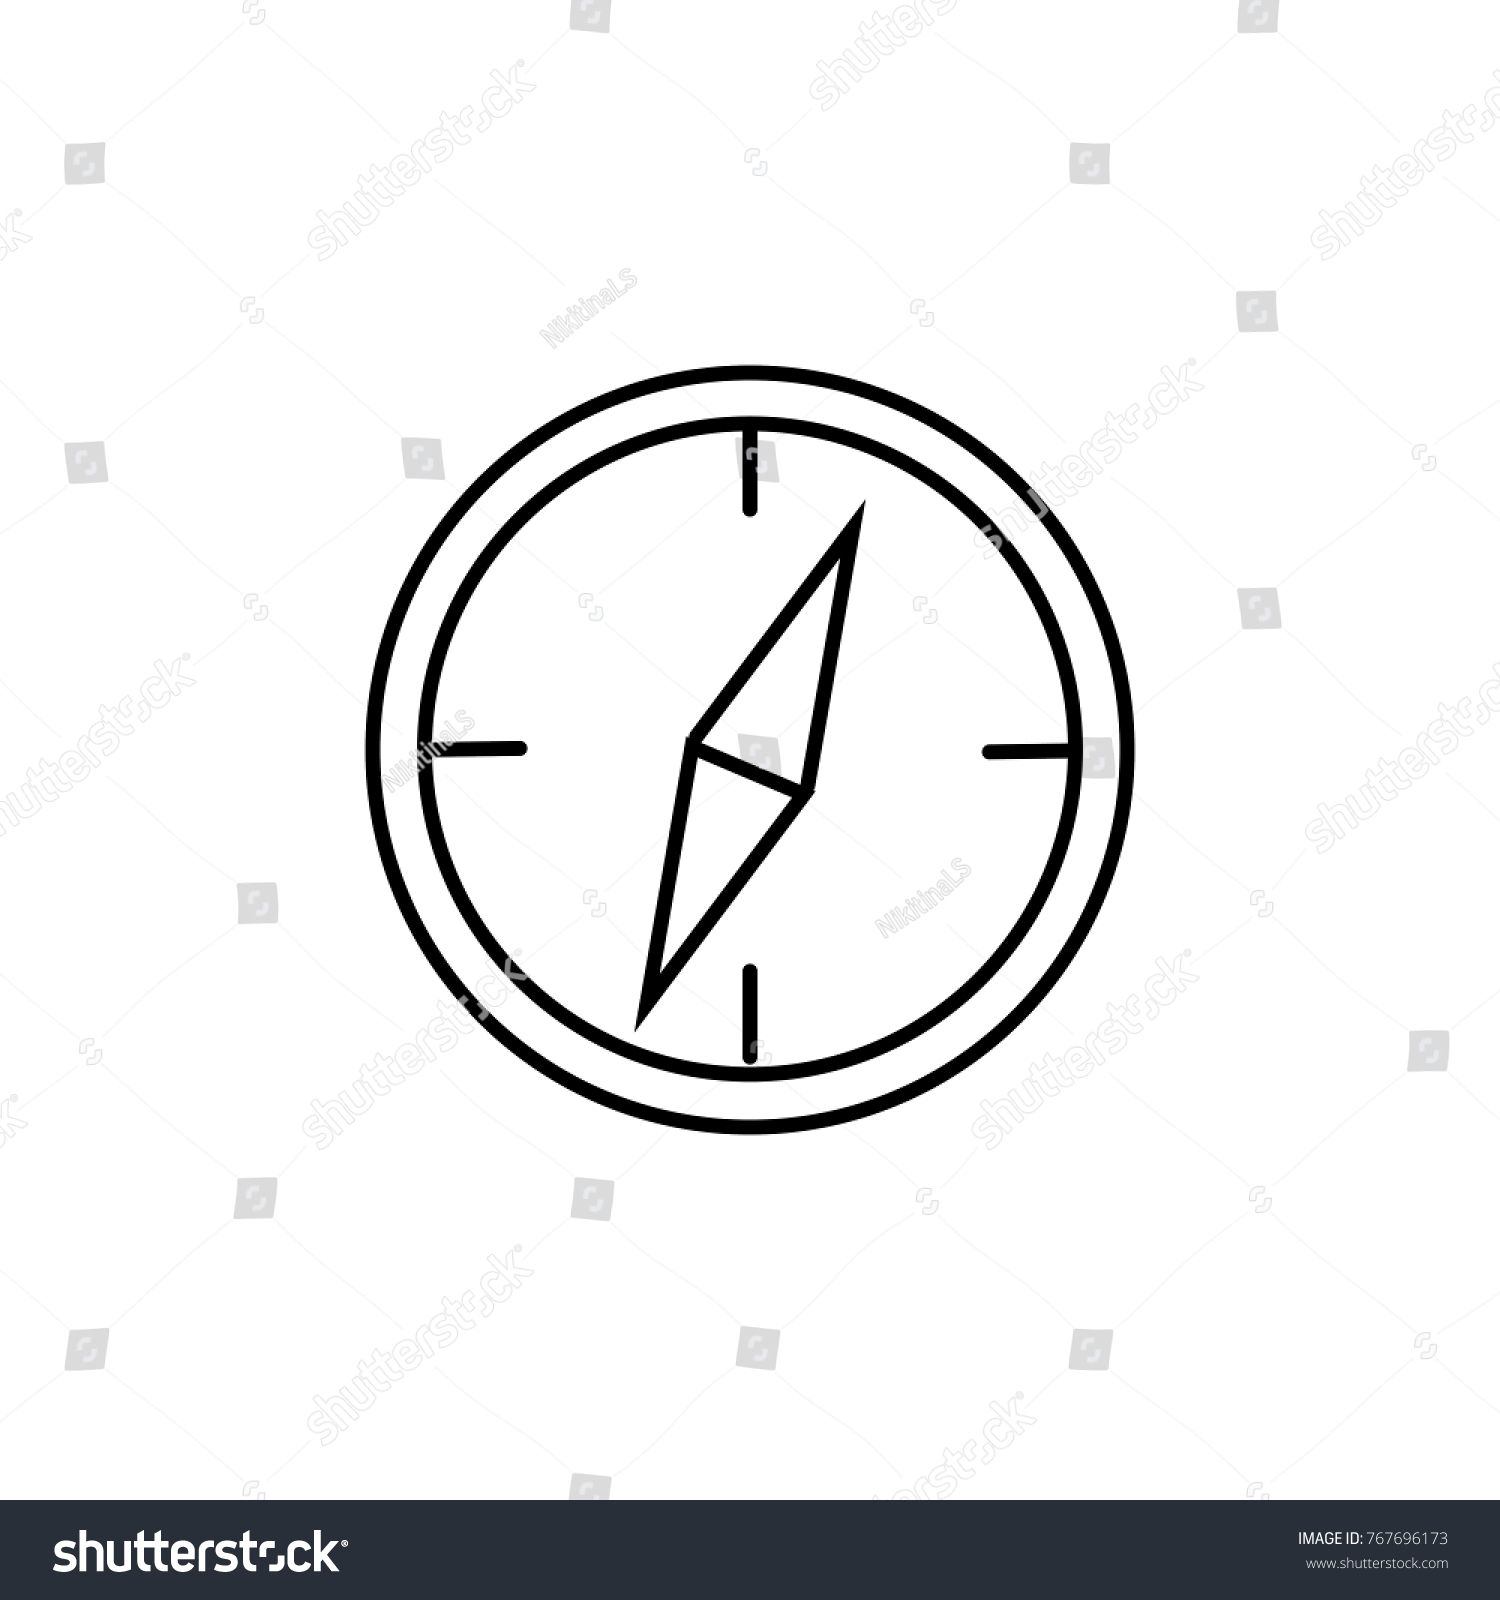 Linear Illustration Compass Icon Hand Light Stock Vector Royalty